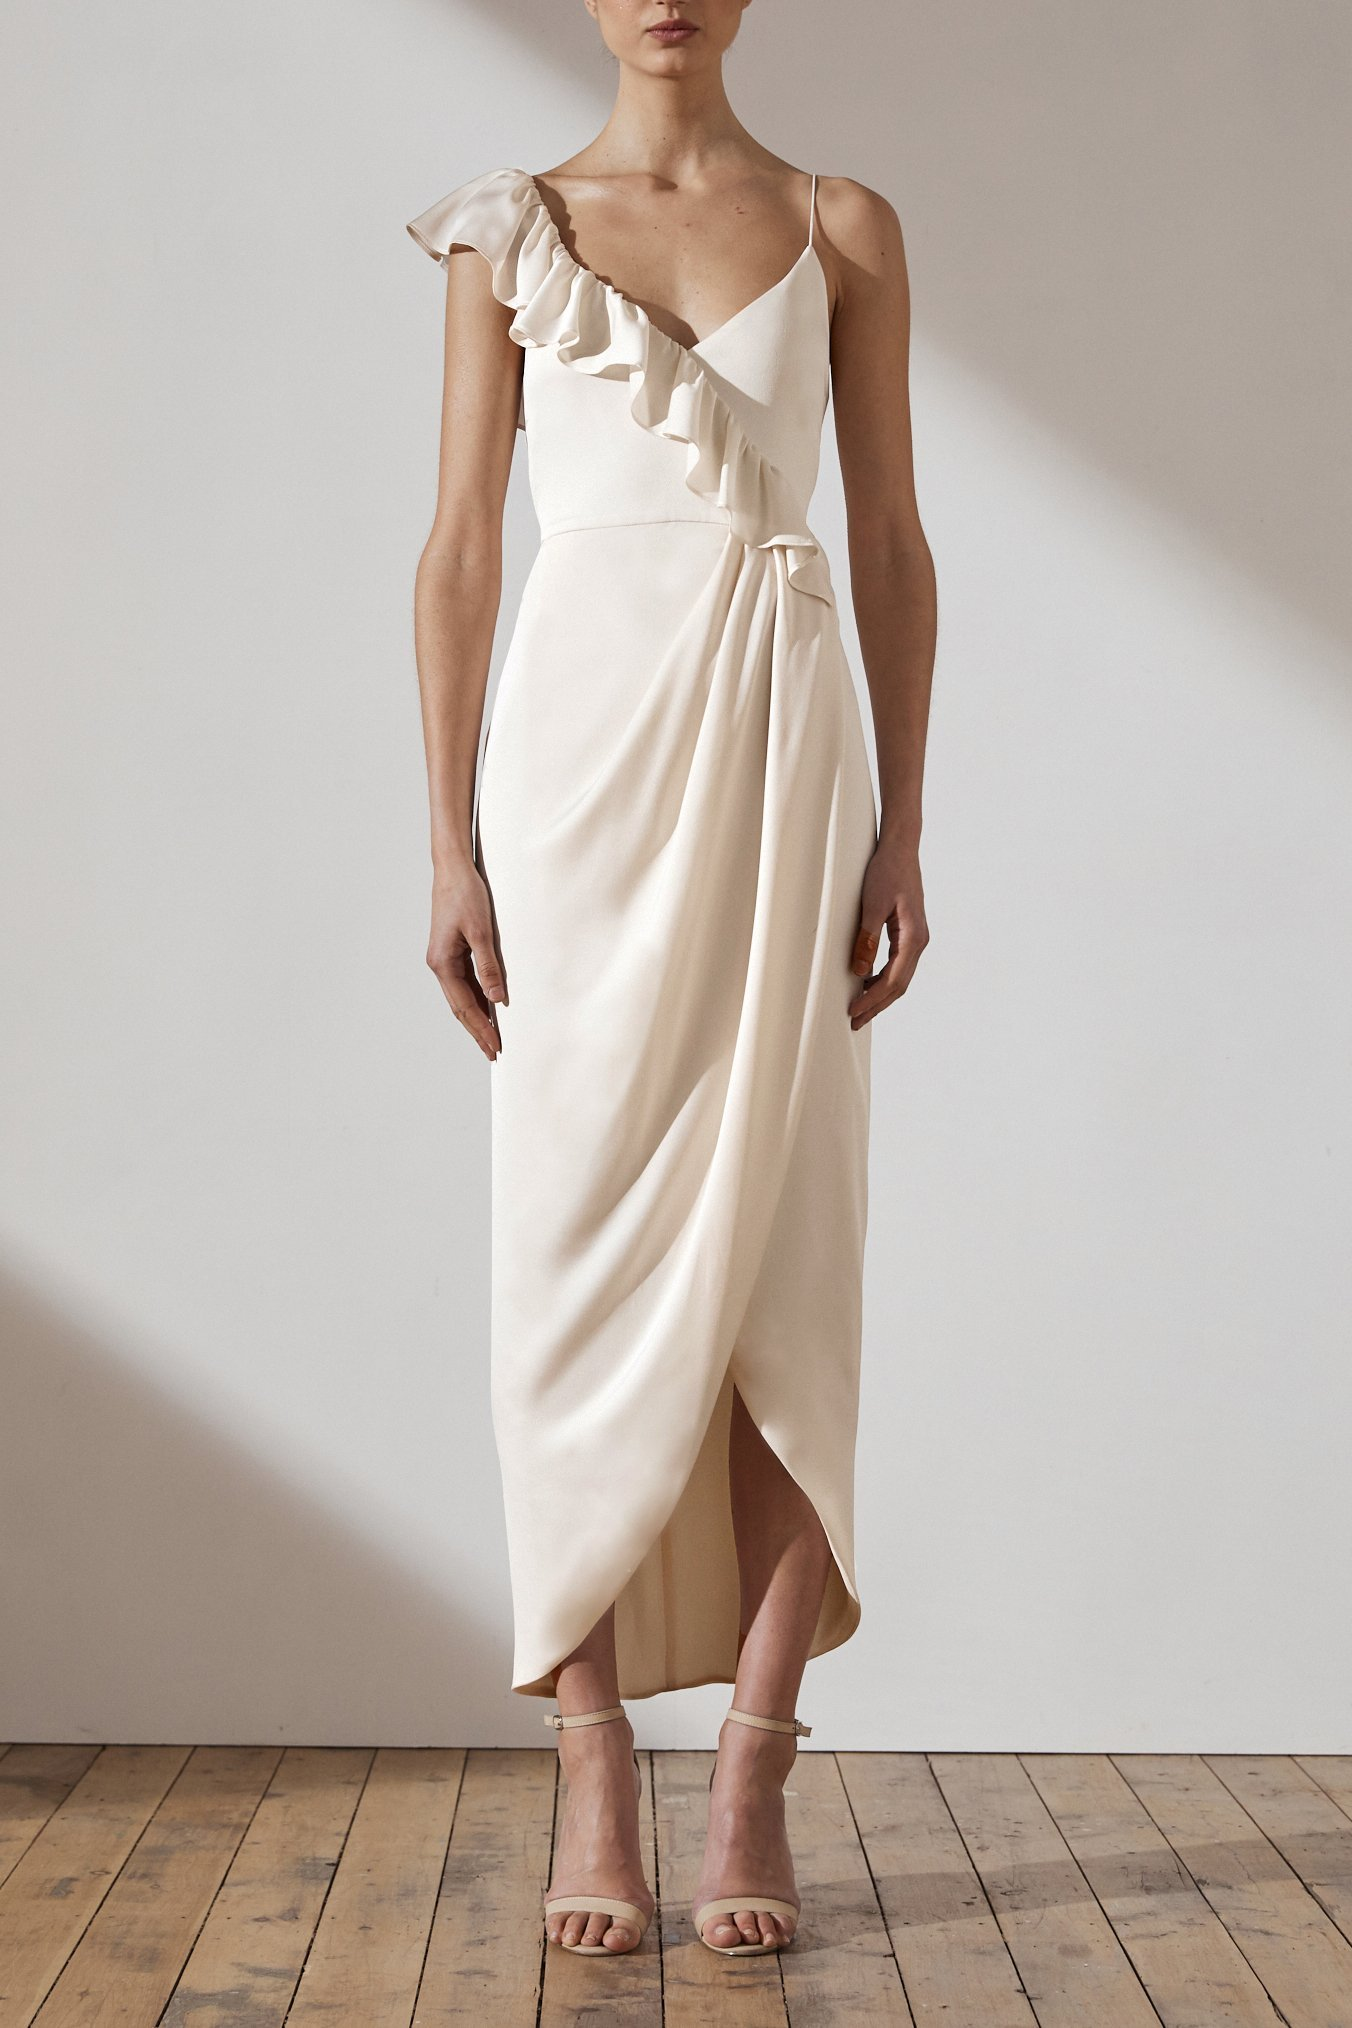 Amy Luxe Asymmetrical Frill Dress by Shona Joy - Creme